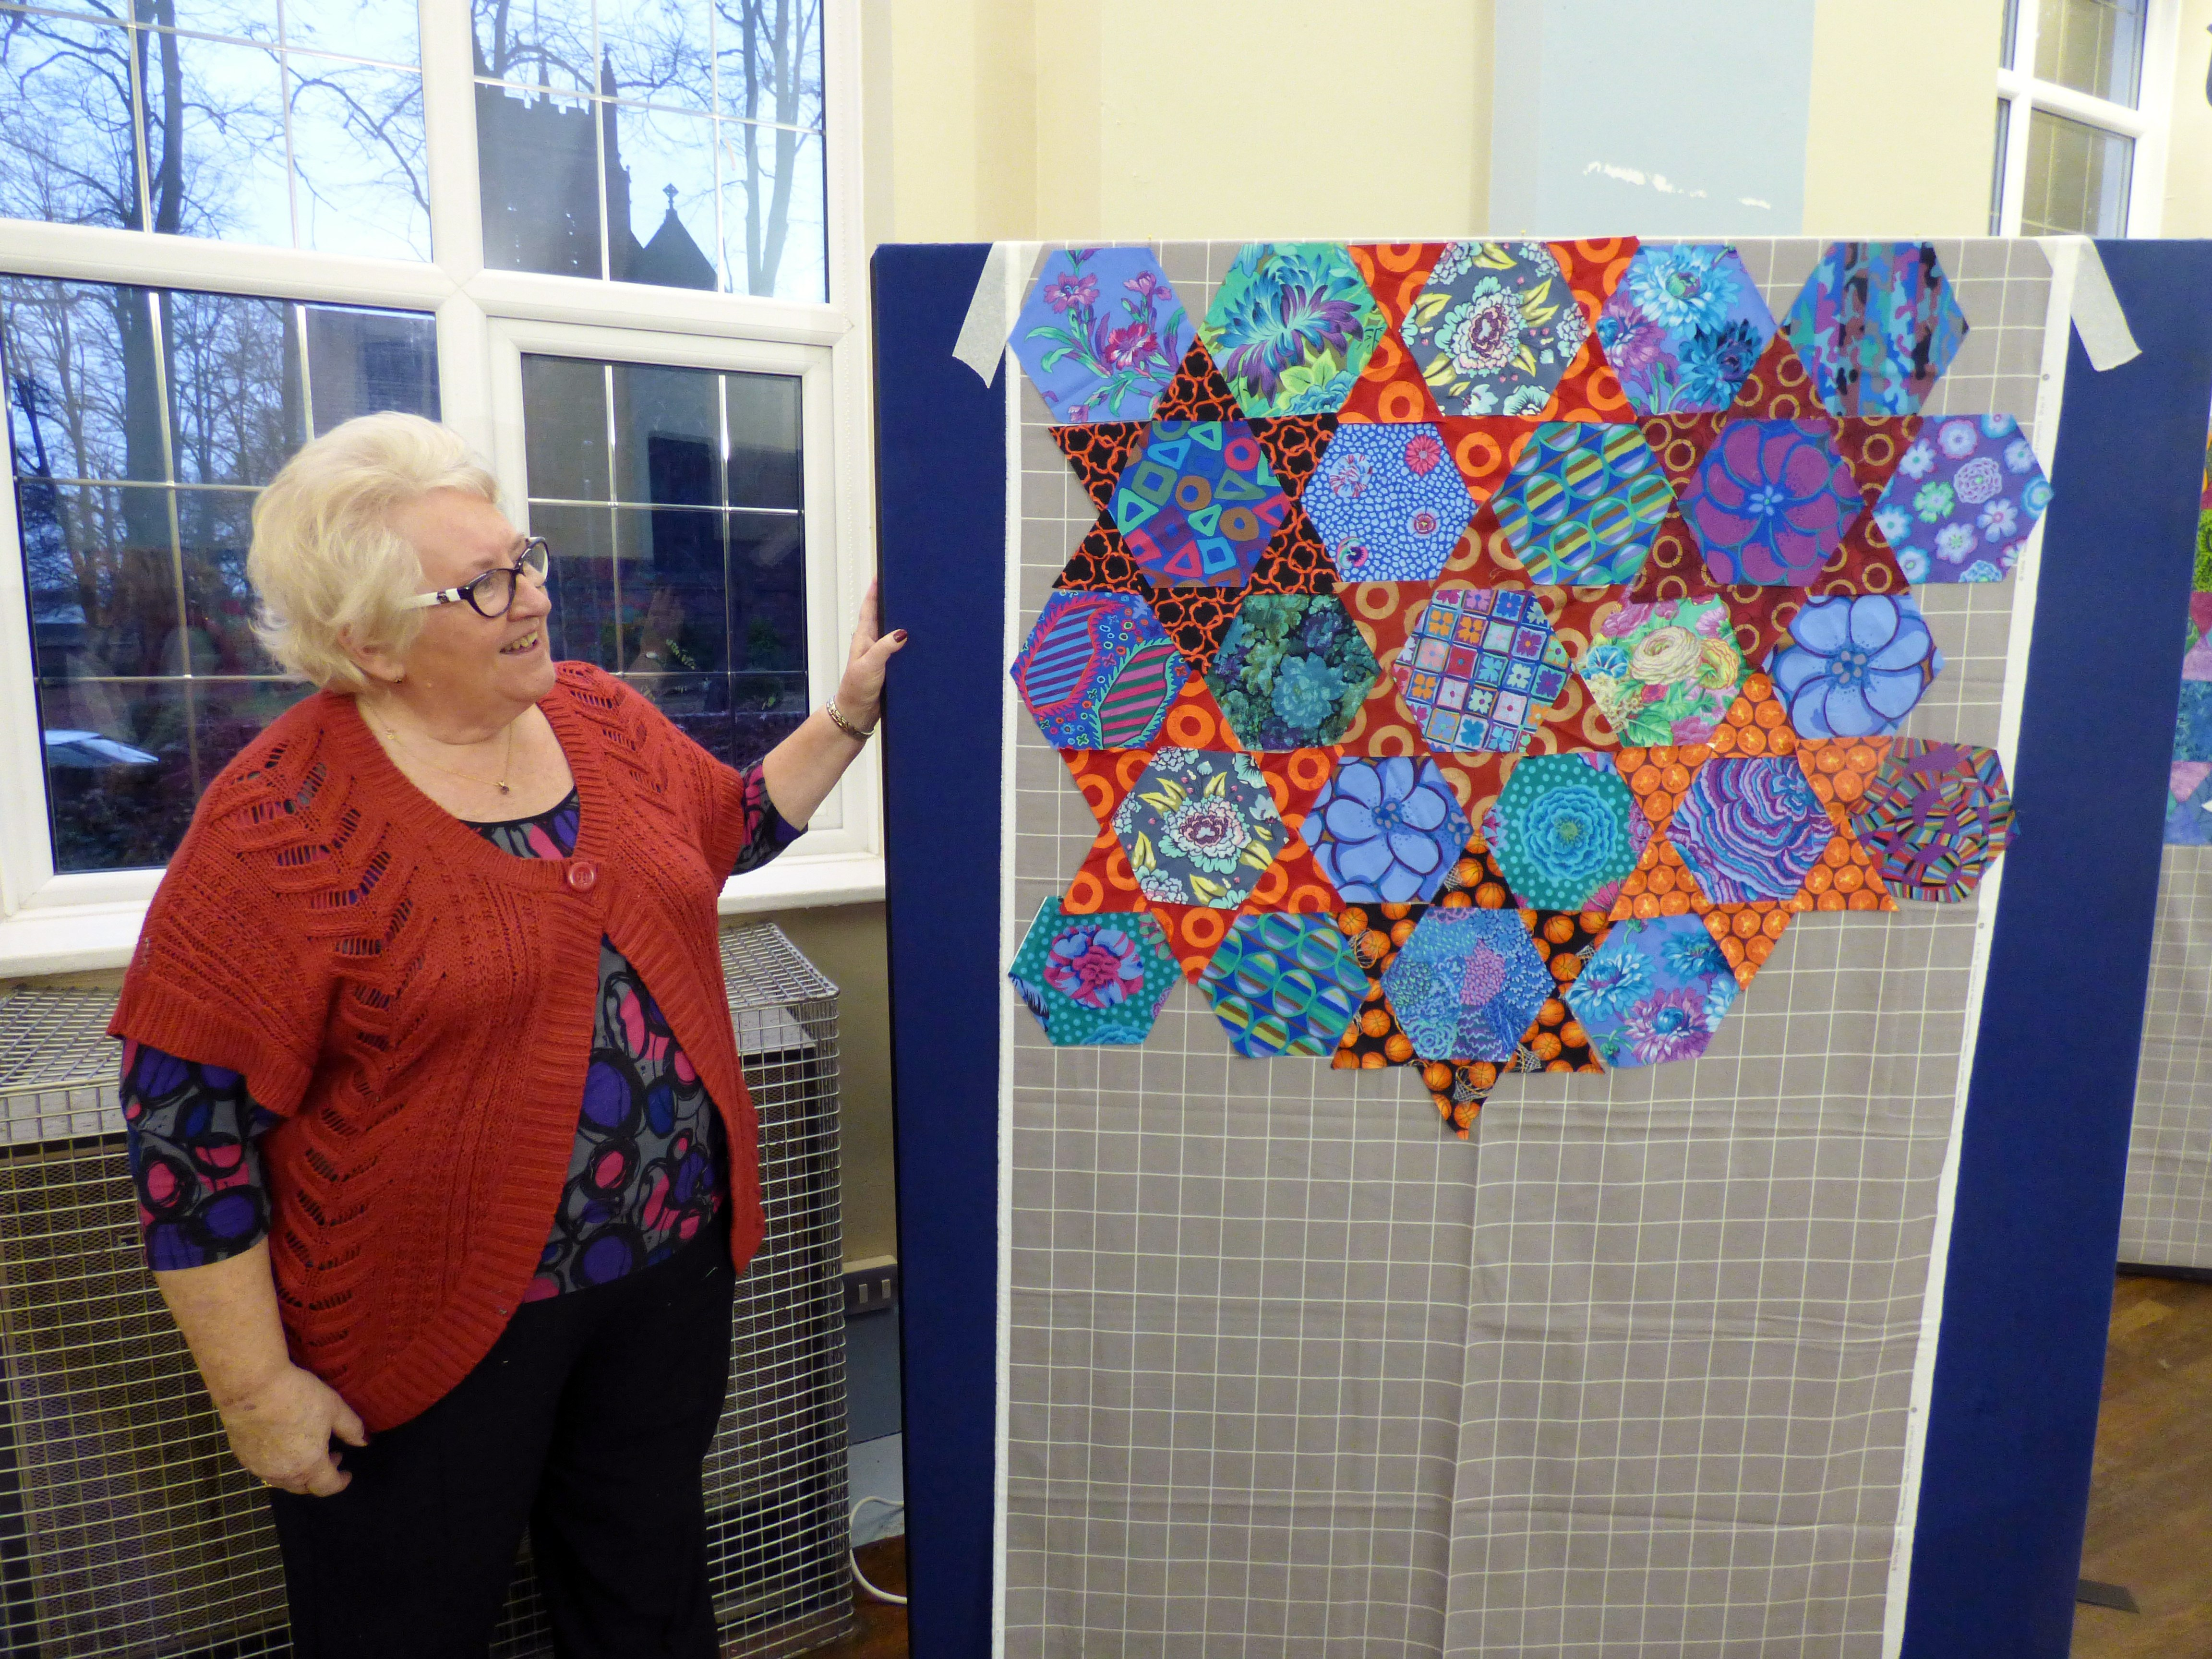 beautiful result at the end of the design workshop- Kaffe Fassett workshop, All Hallows, Dec 2016